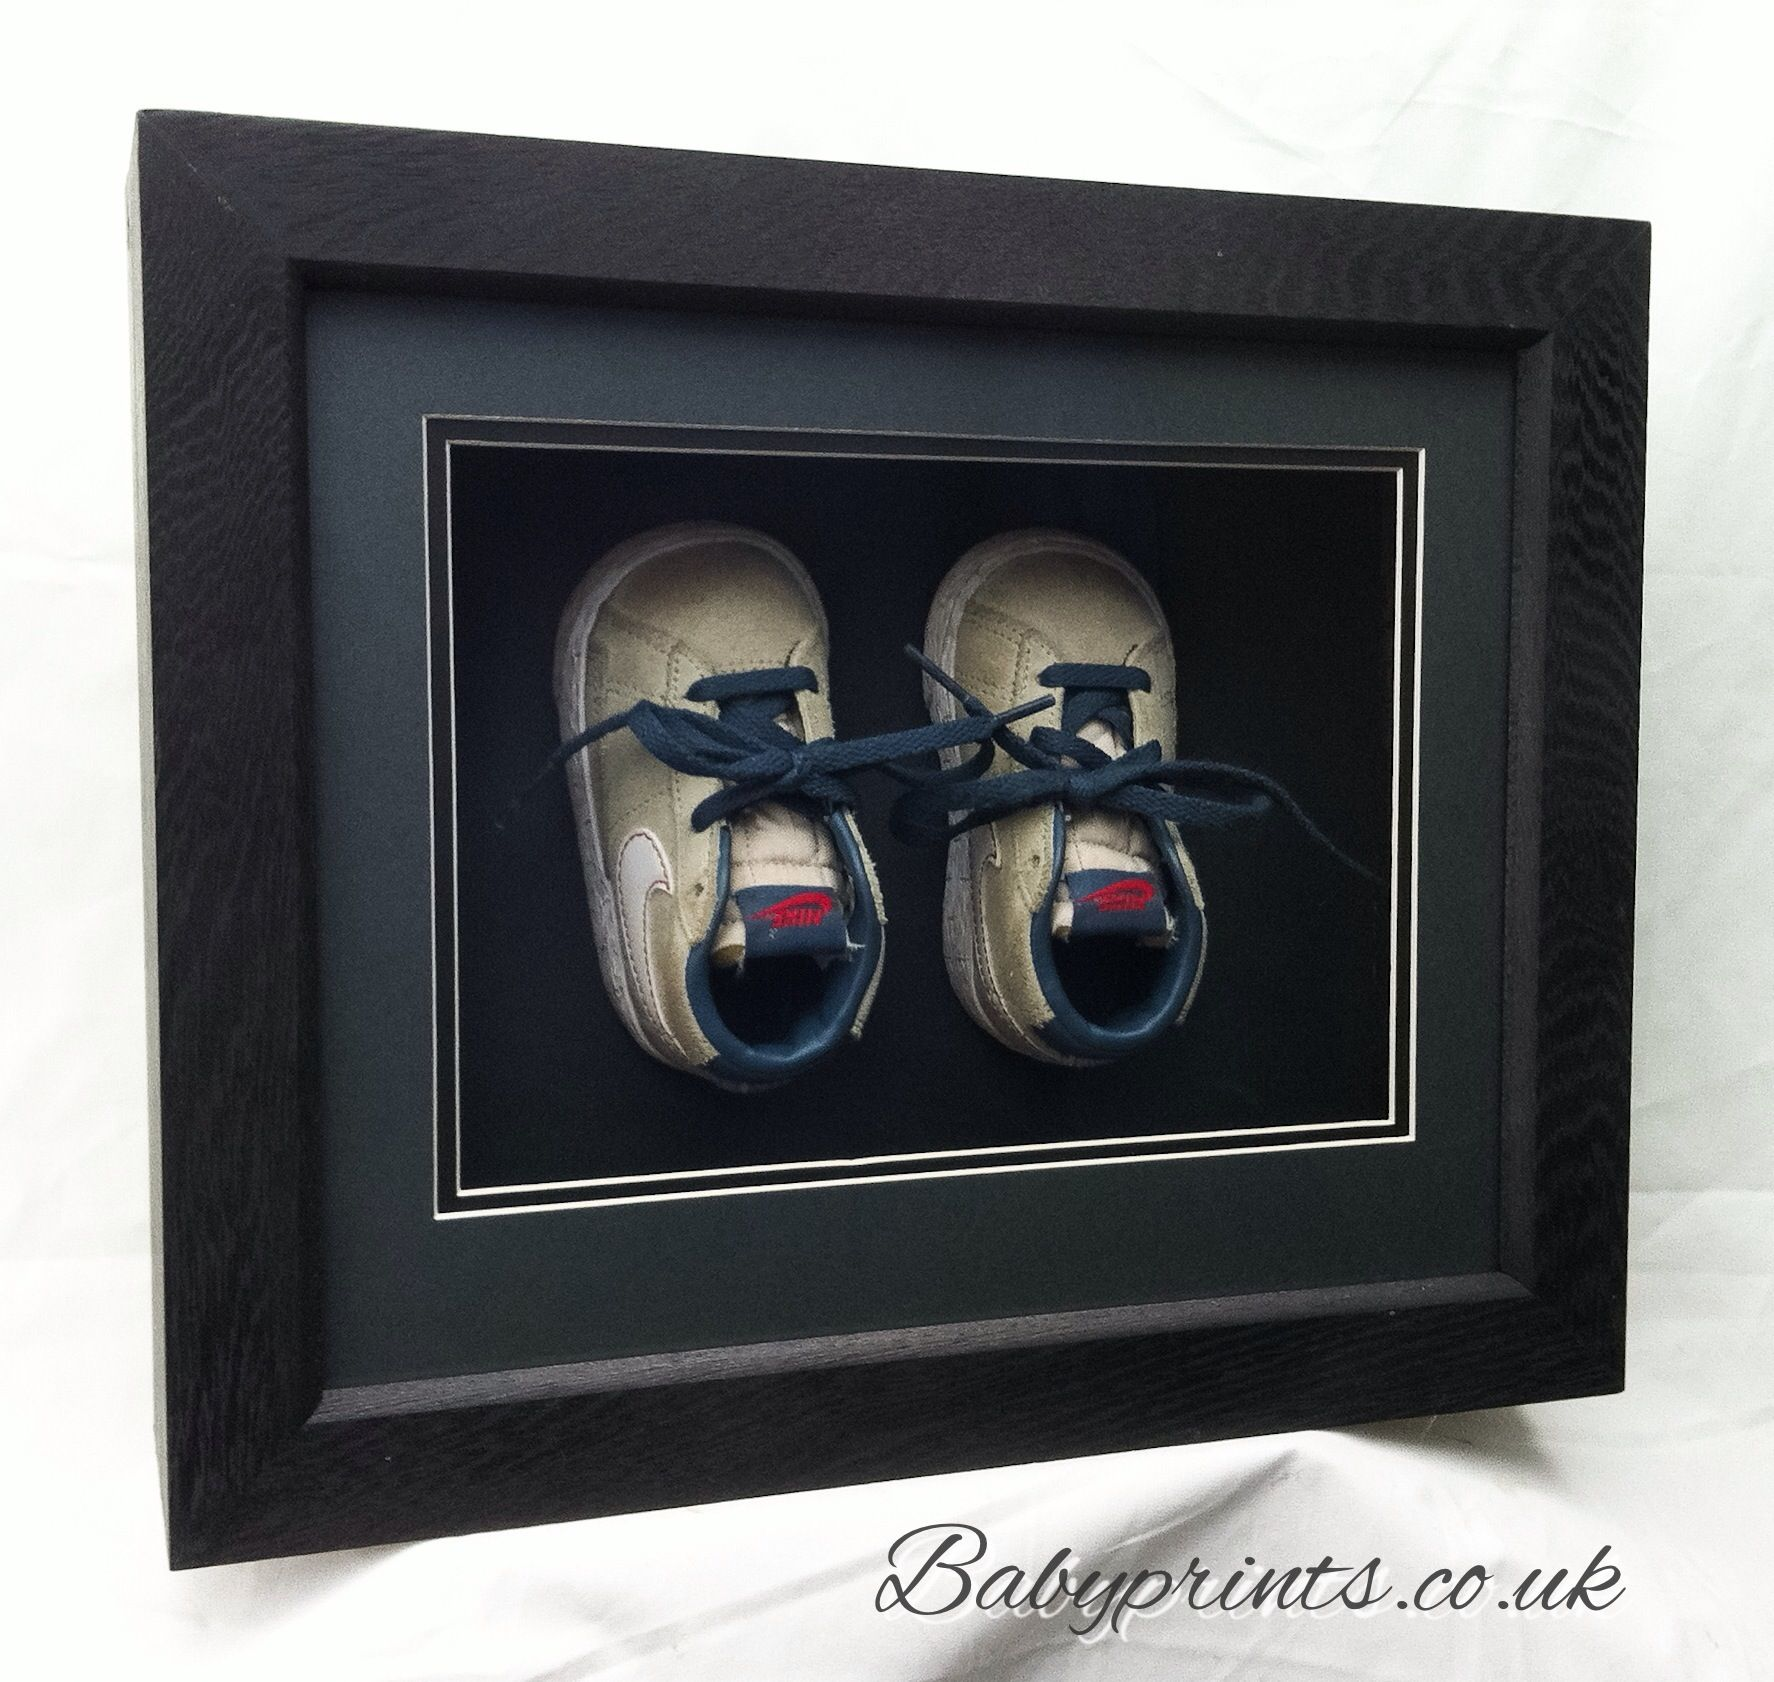 Your little boy's first shoes framed in our extra deep frames made especially.  By Babyprints.co.uk